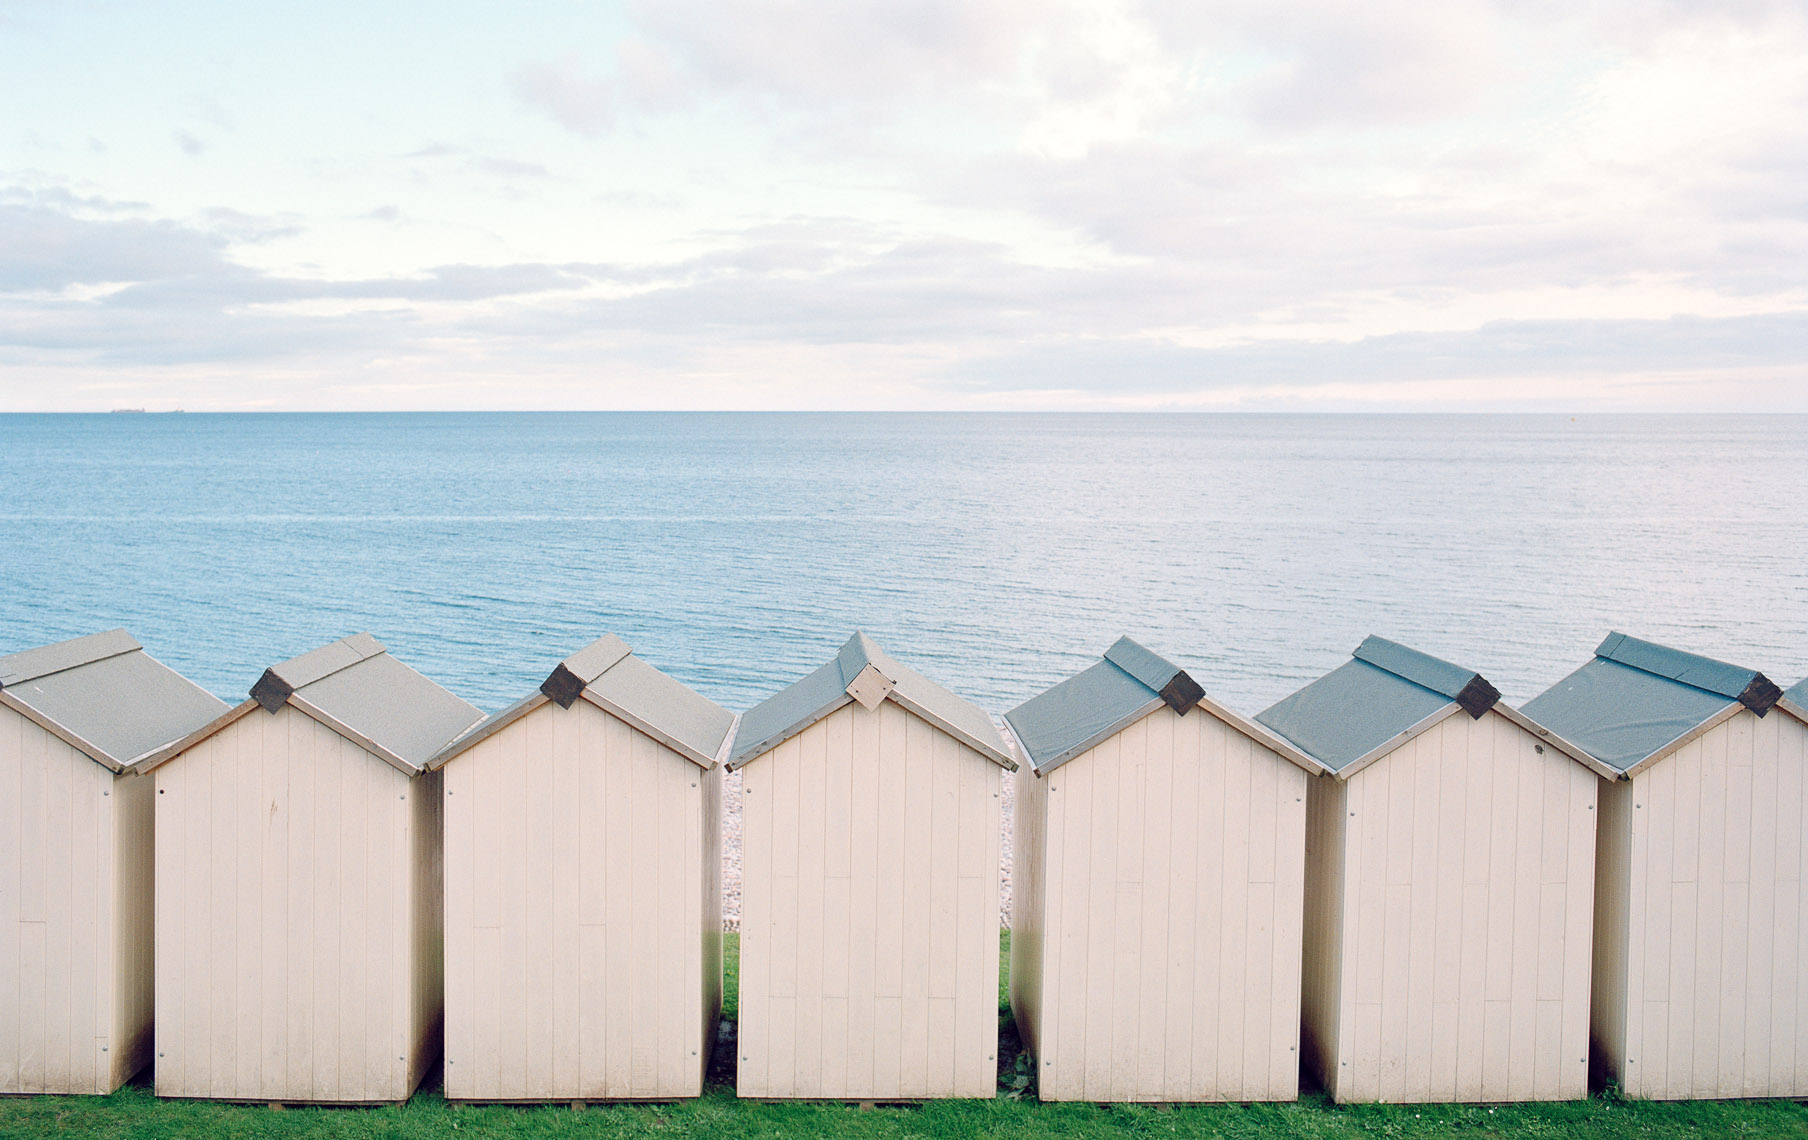 beachhuts-small.jpg